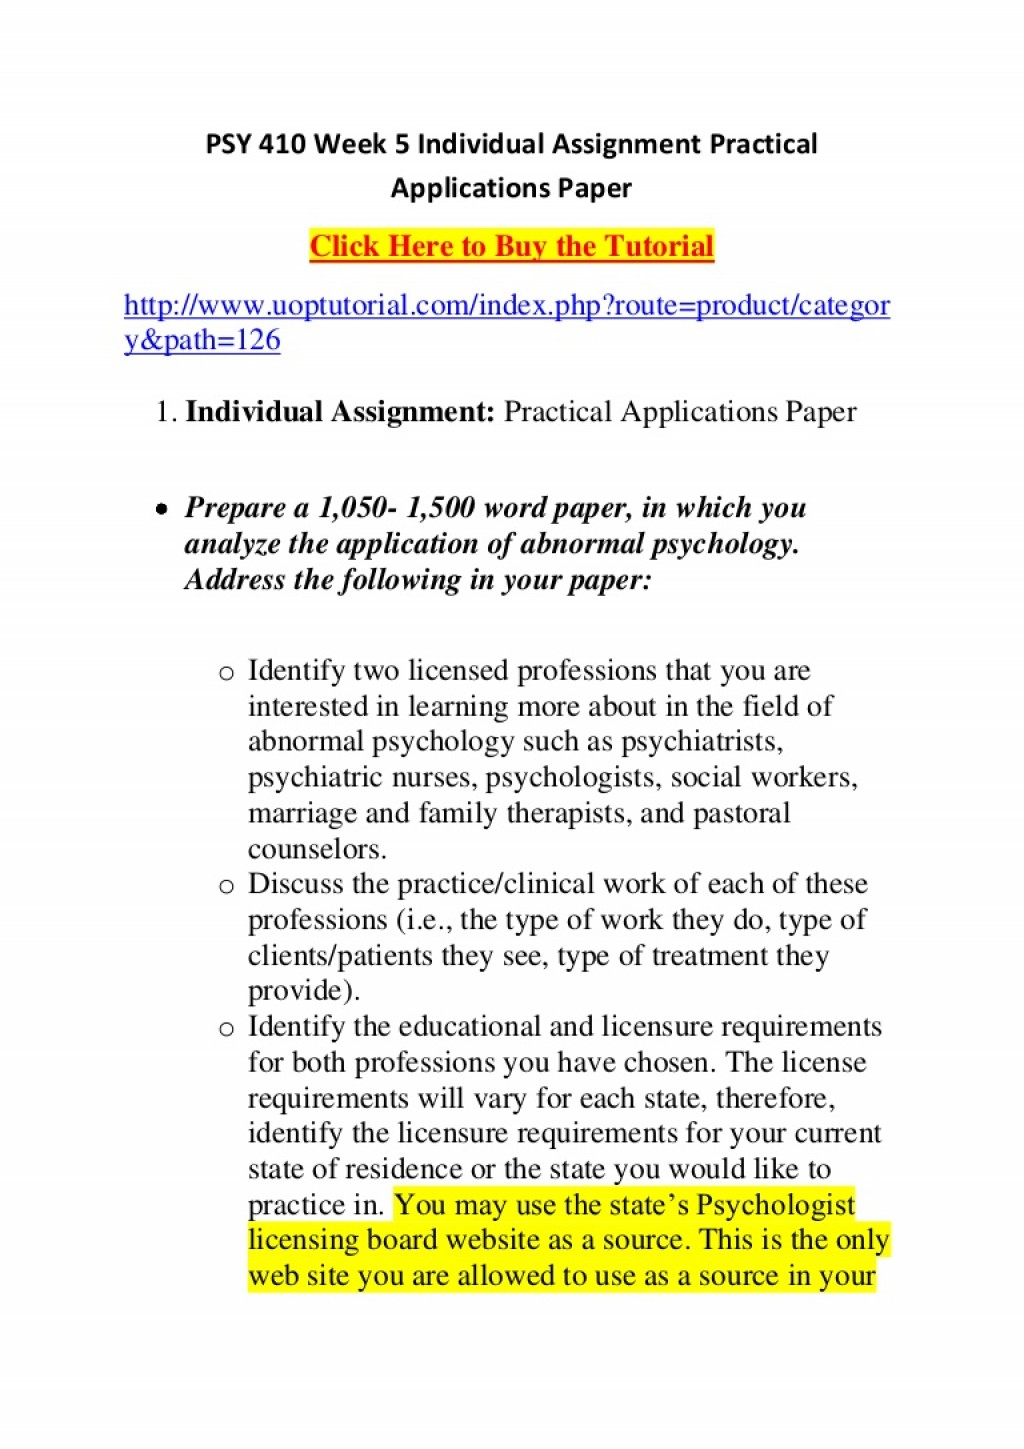 022 Research Paper Abnormal Psychology Topics For Psy410week5individualassignmentpracticalapplicationspaper Phpapp02 Thumbnail Unique Large